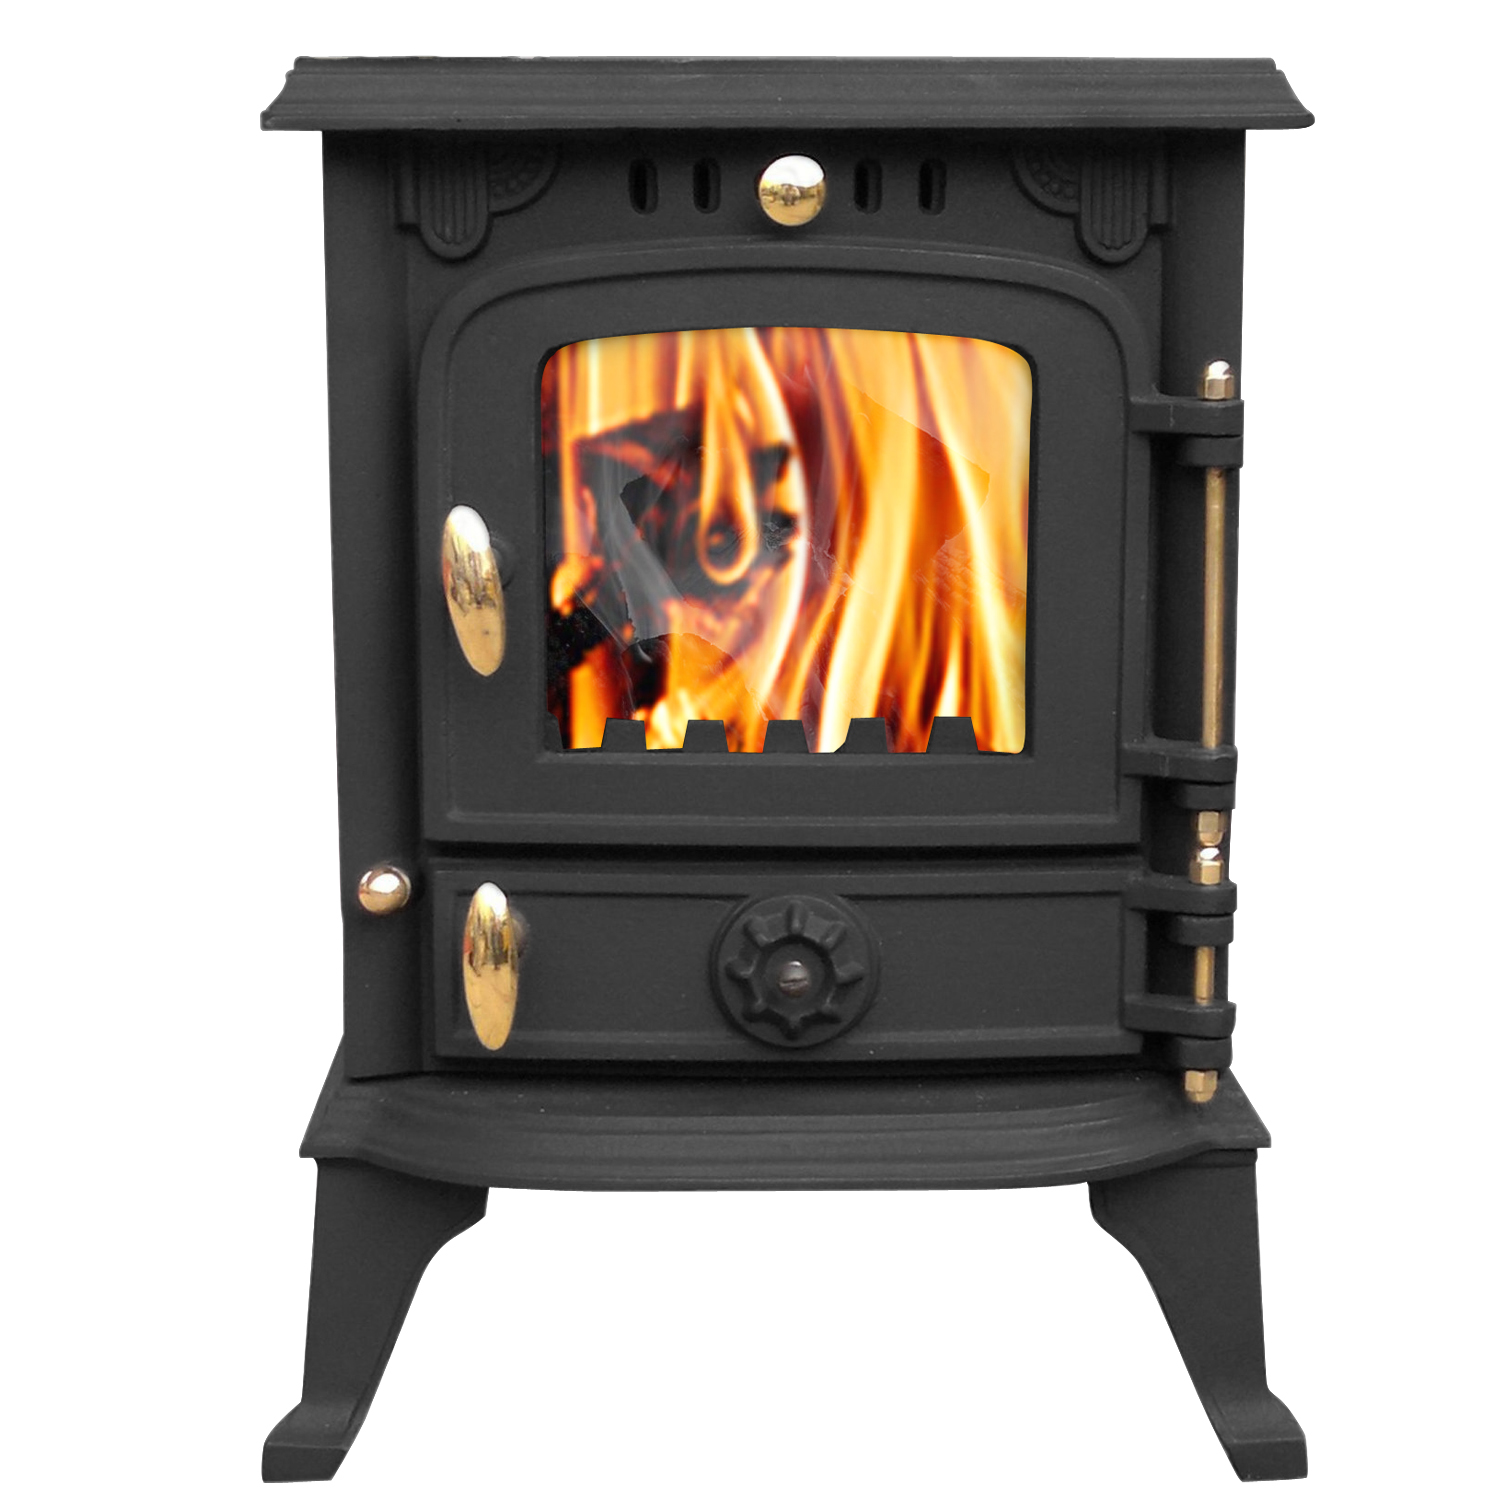 multifuel cast iron log burner wood burning stove fireplace new ebay